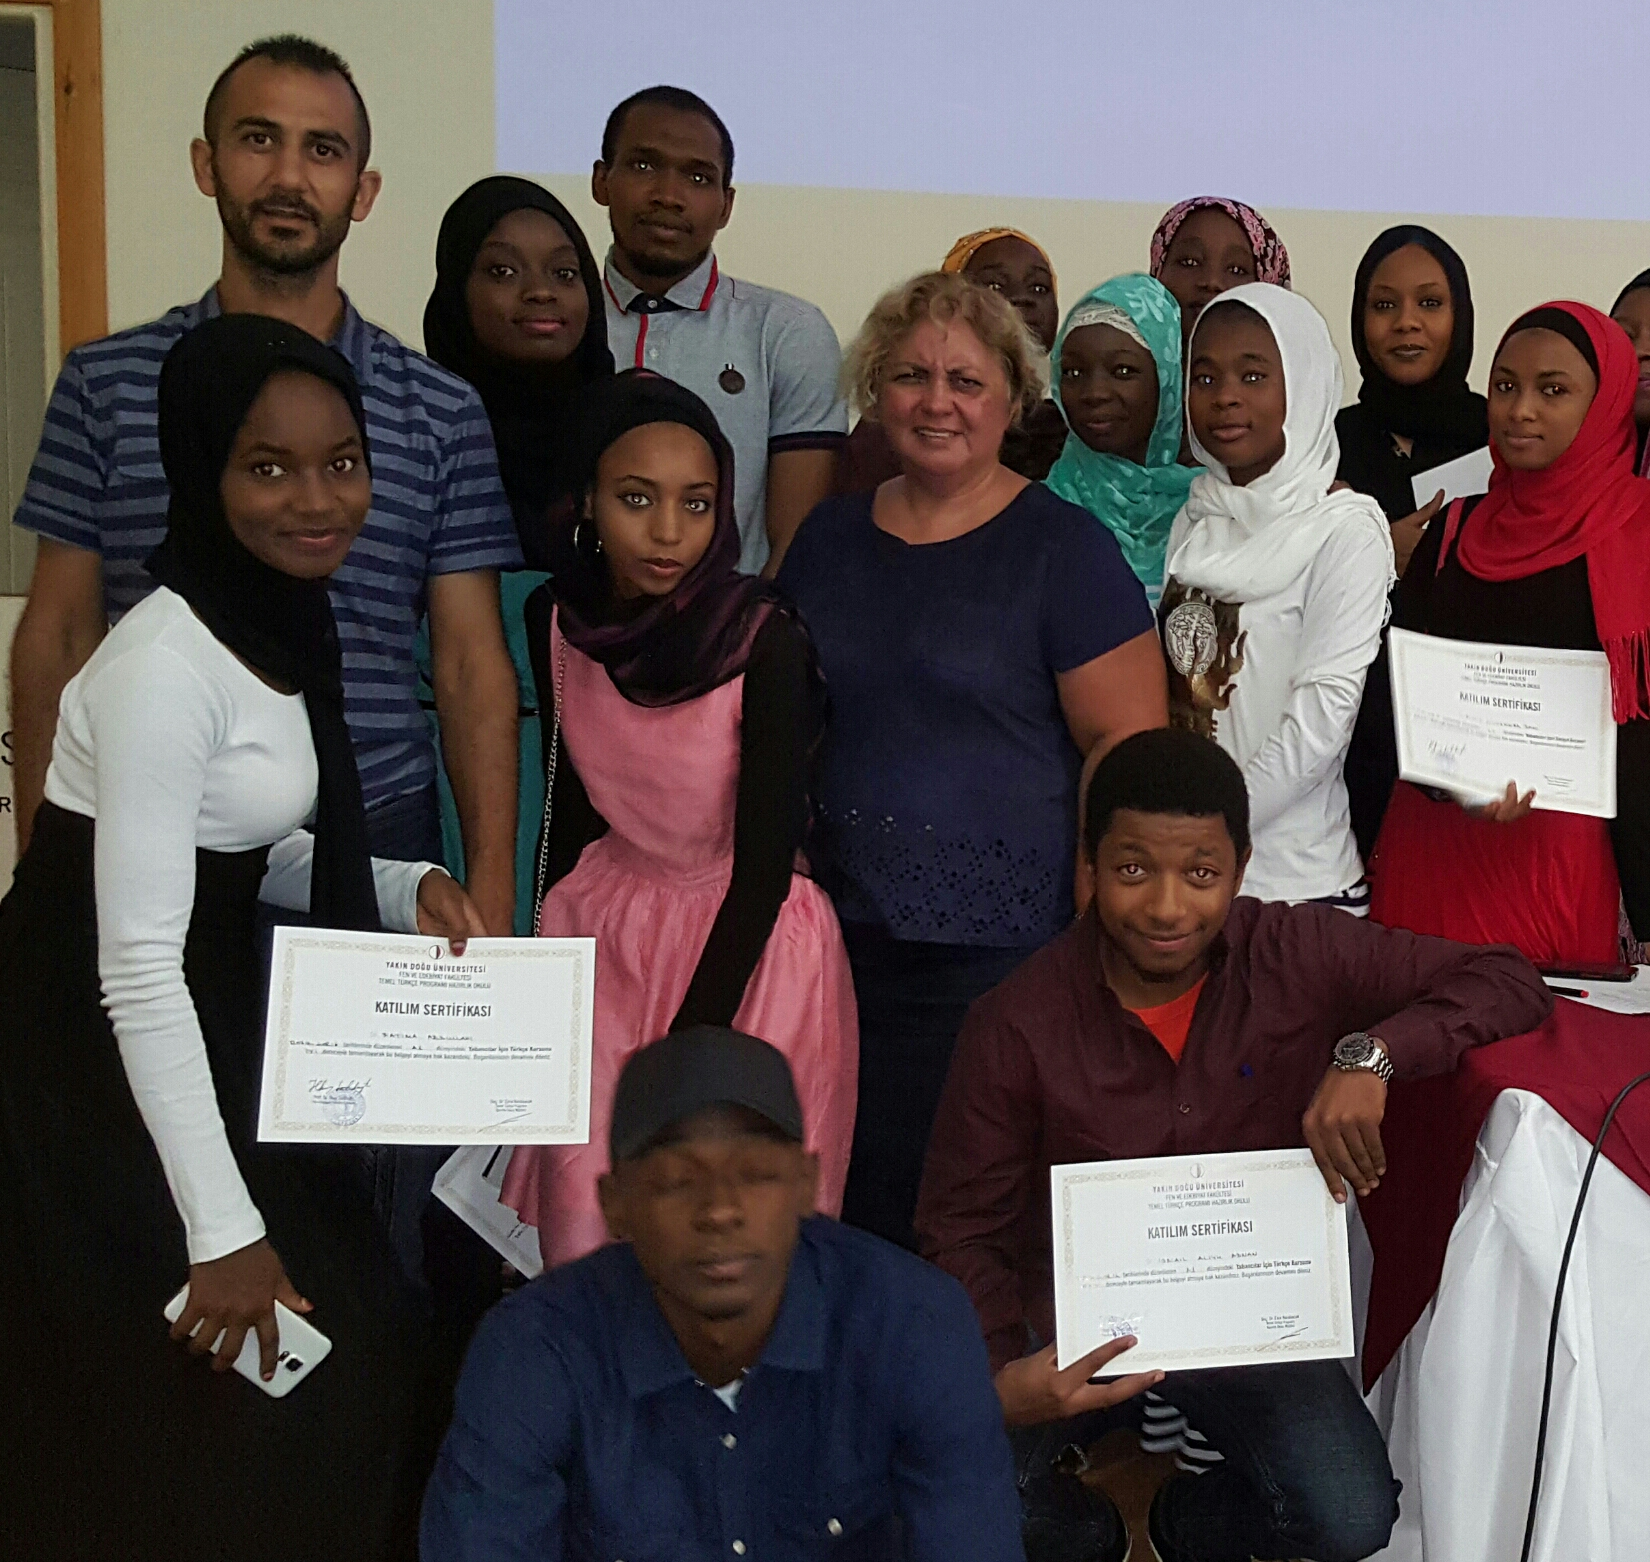 Trainees that participated in Near East University Turkish Summer School program received their certificate